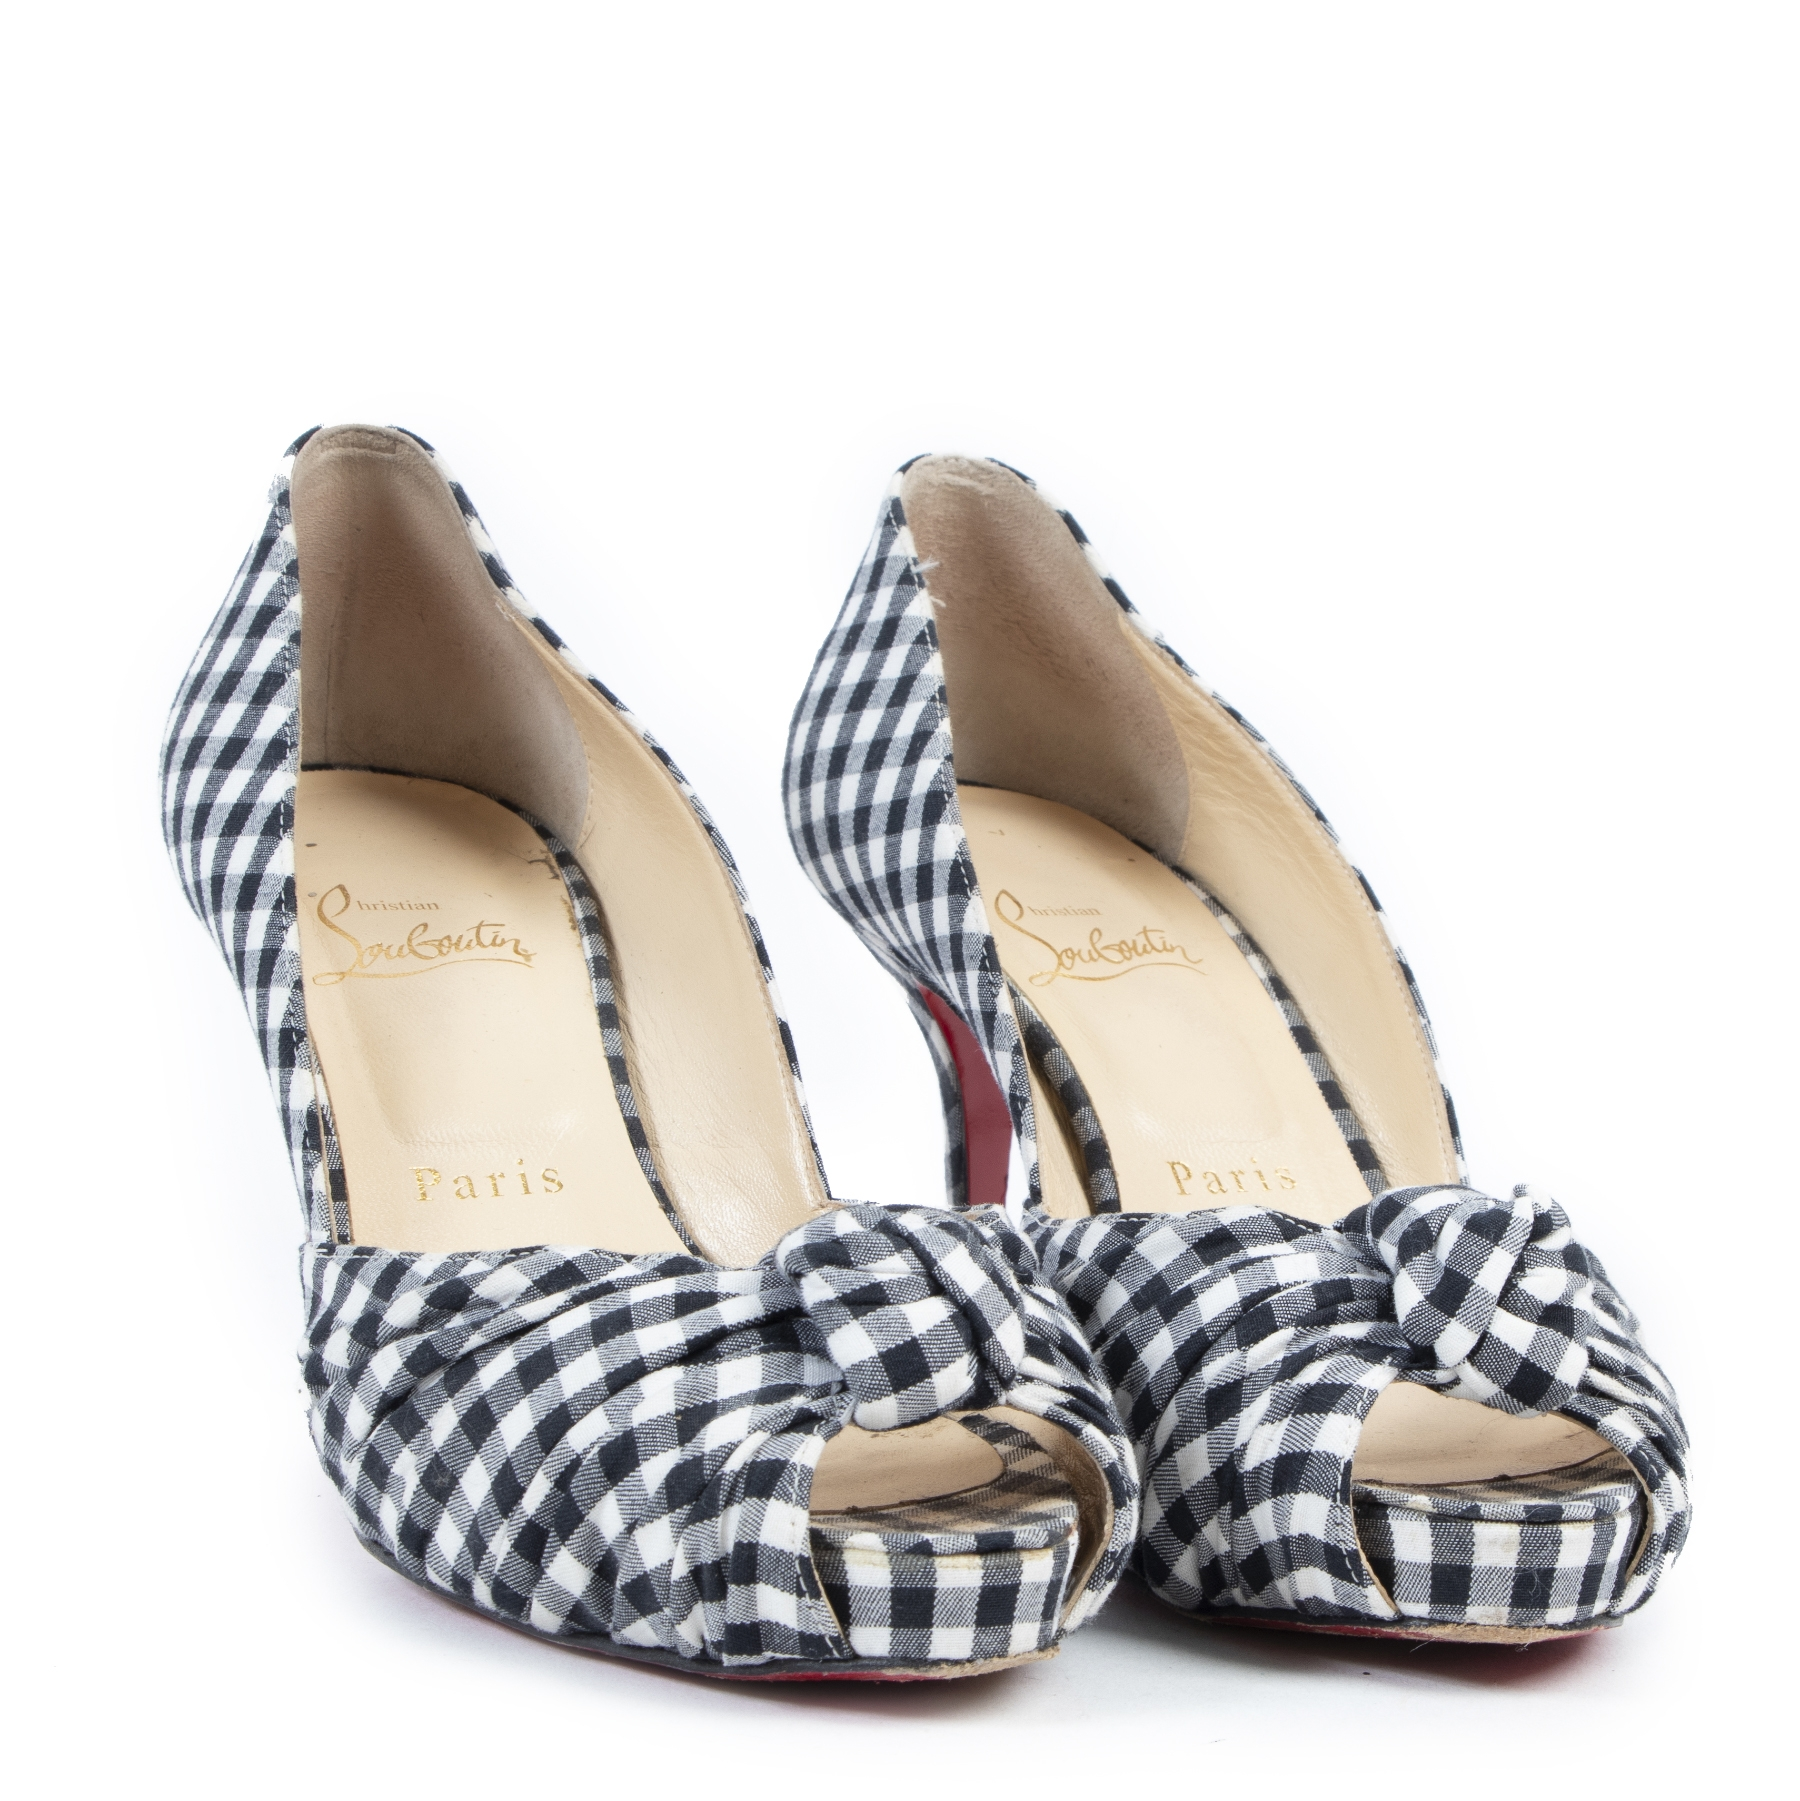 Louboutin Checkered Greissimo 85 Pumps - Size 37,5